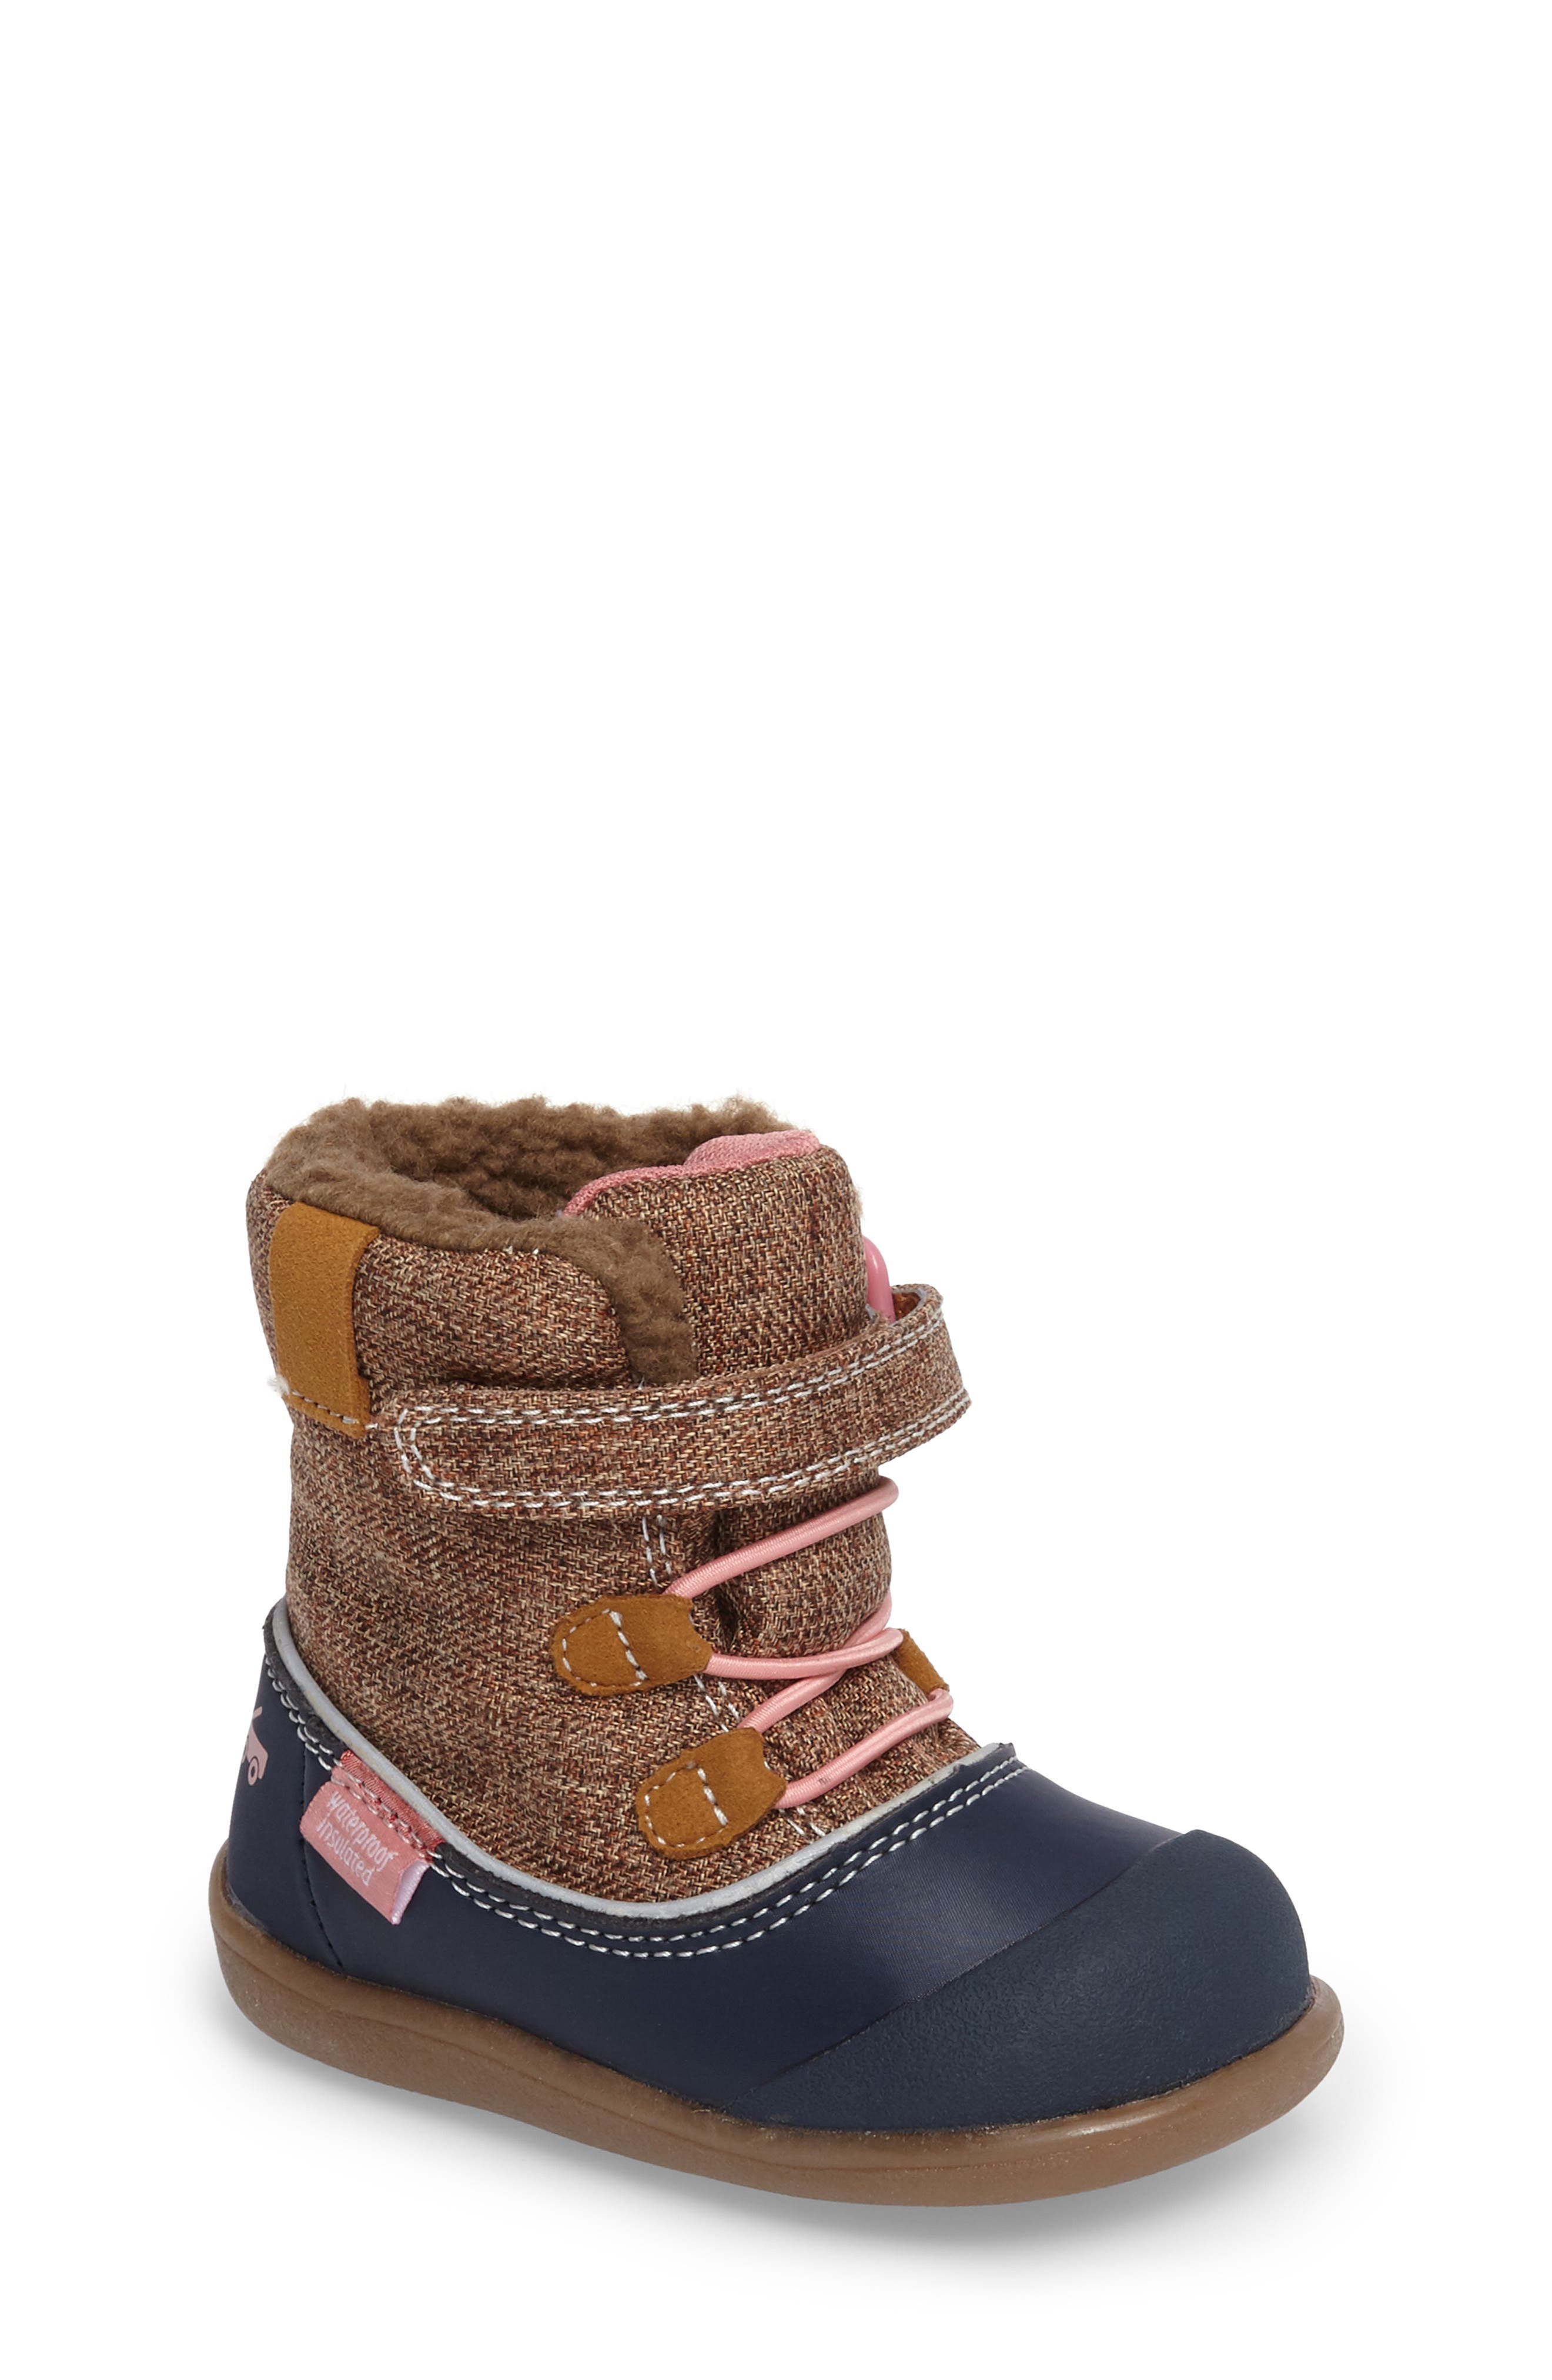 'Abby' Waterproof Boot,                         Main,                         color, Brown